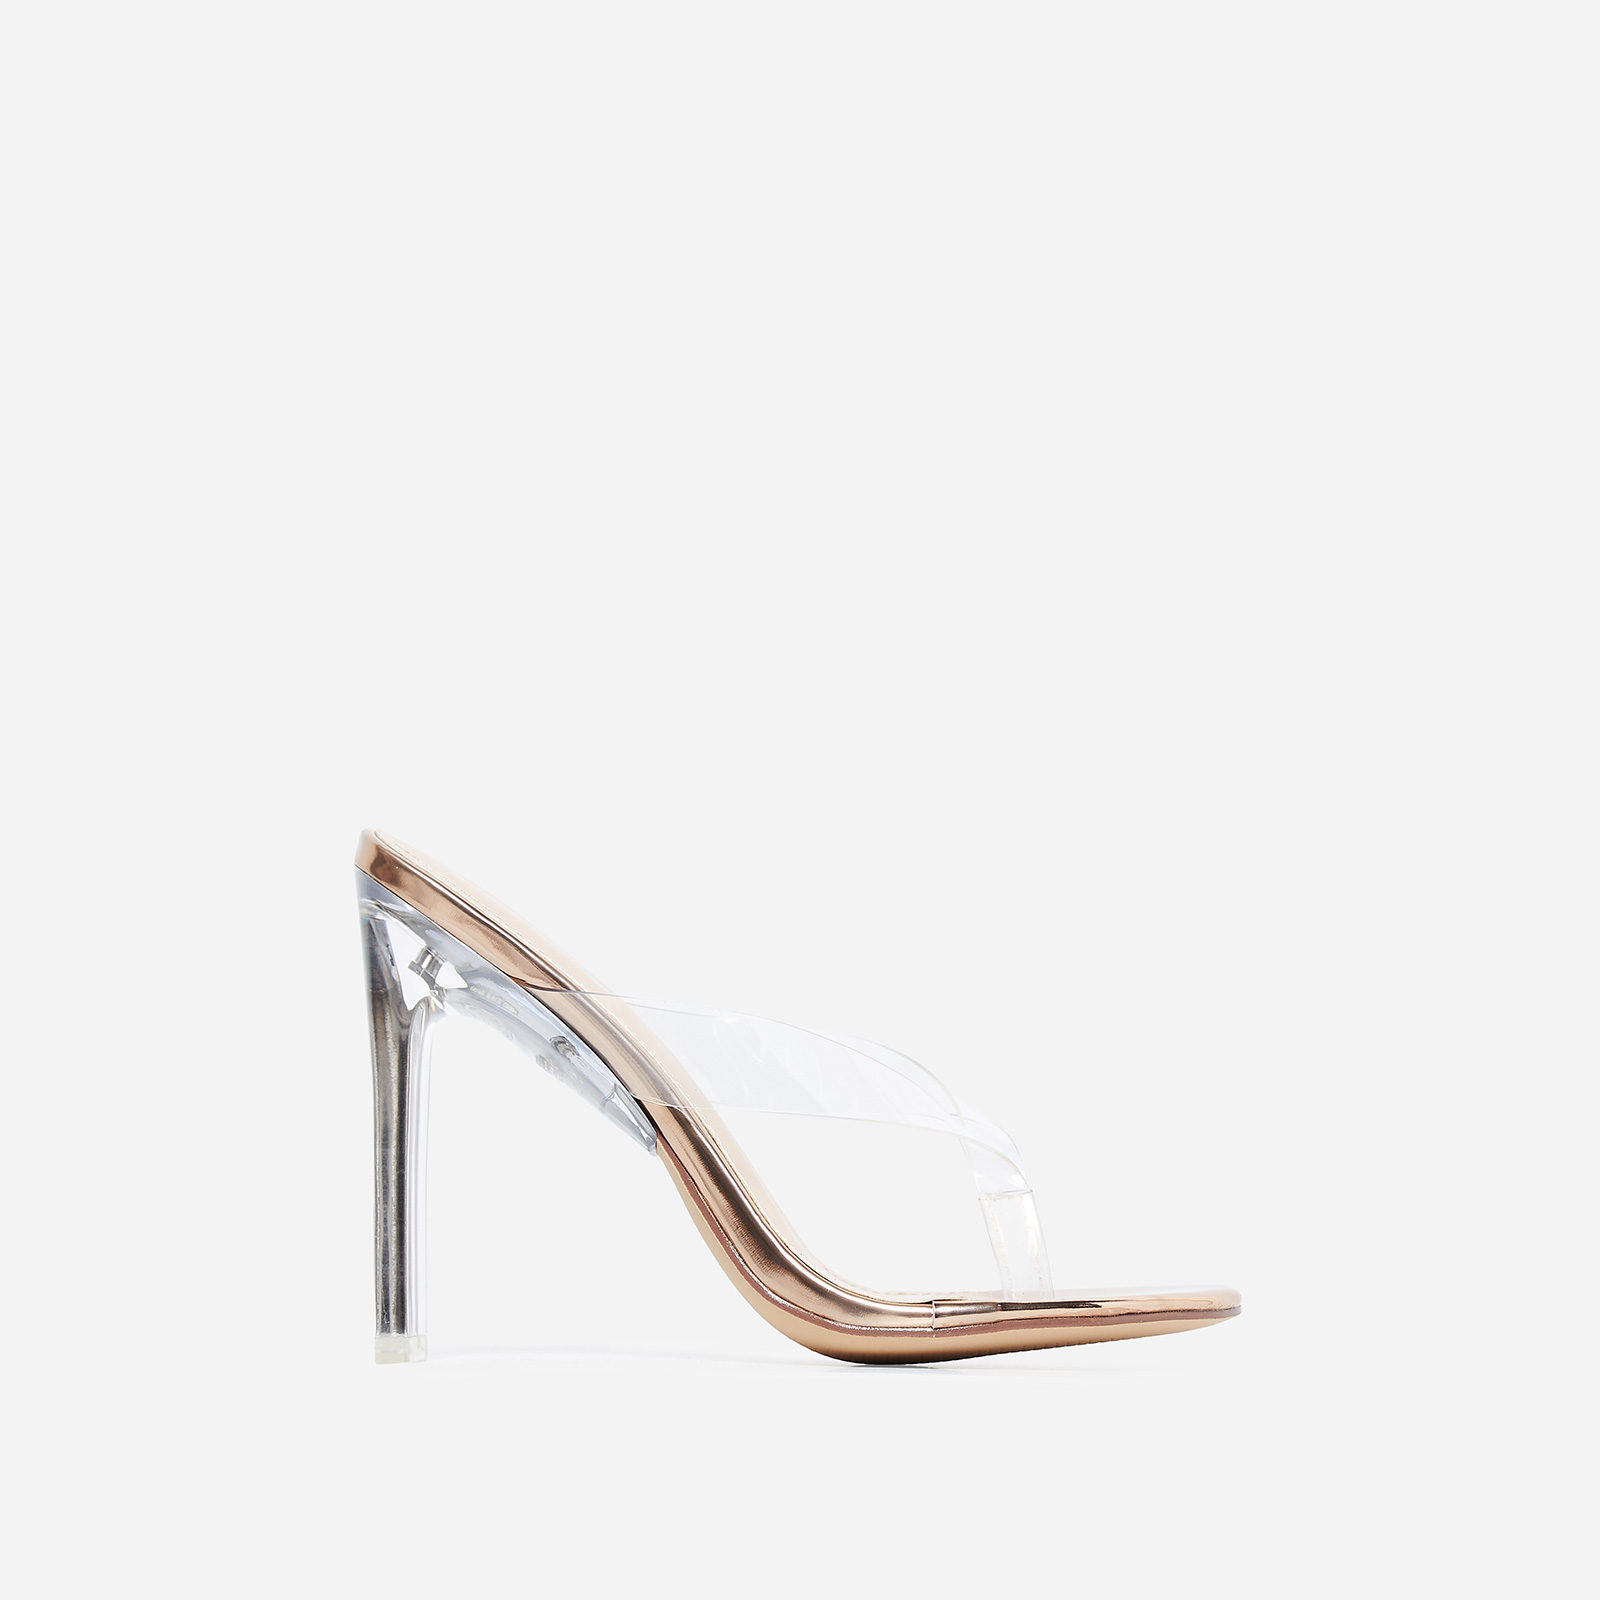 Scandal Flip Flop Flat Perspex Heel In Rose Gold Faux Leather